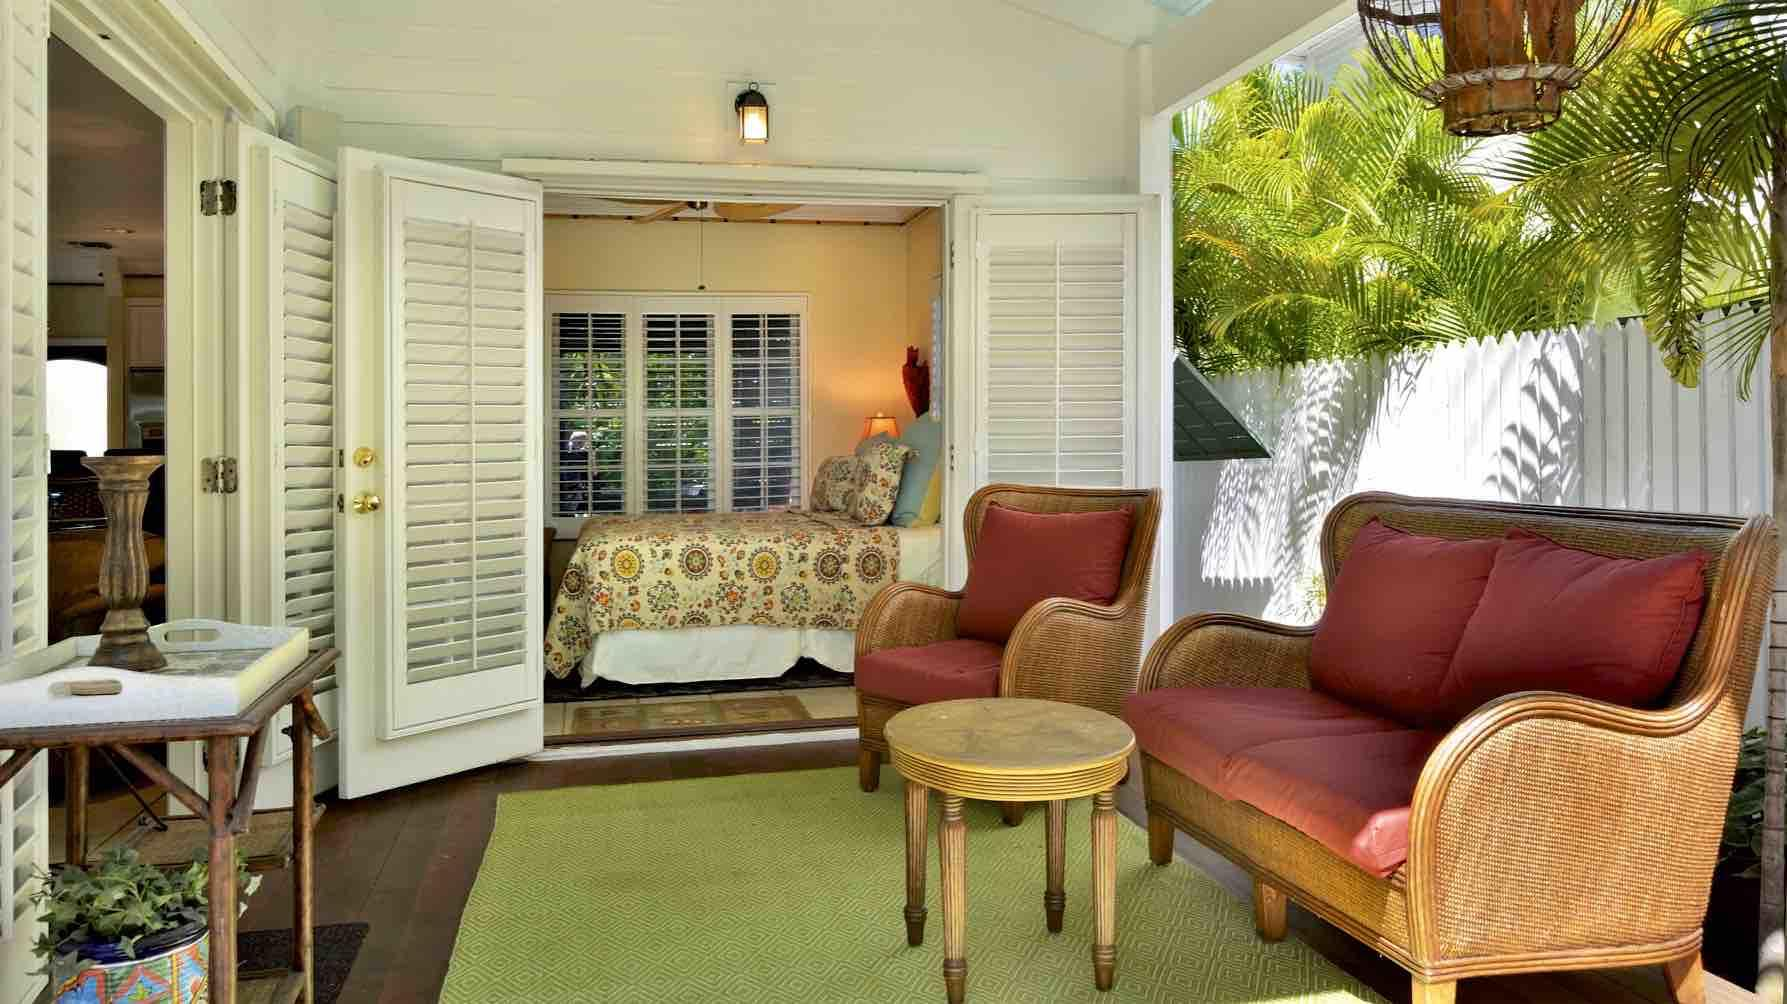 There is a comfortable seating area on the porch. Perfect for morning coffee...